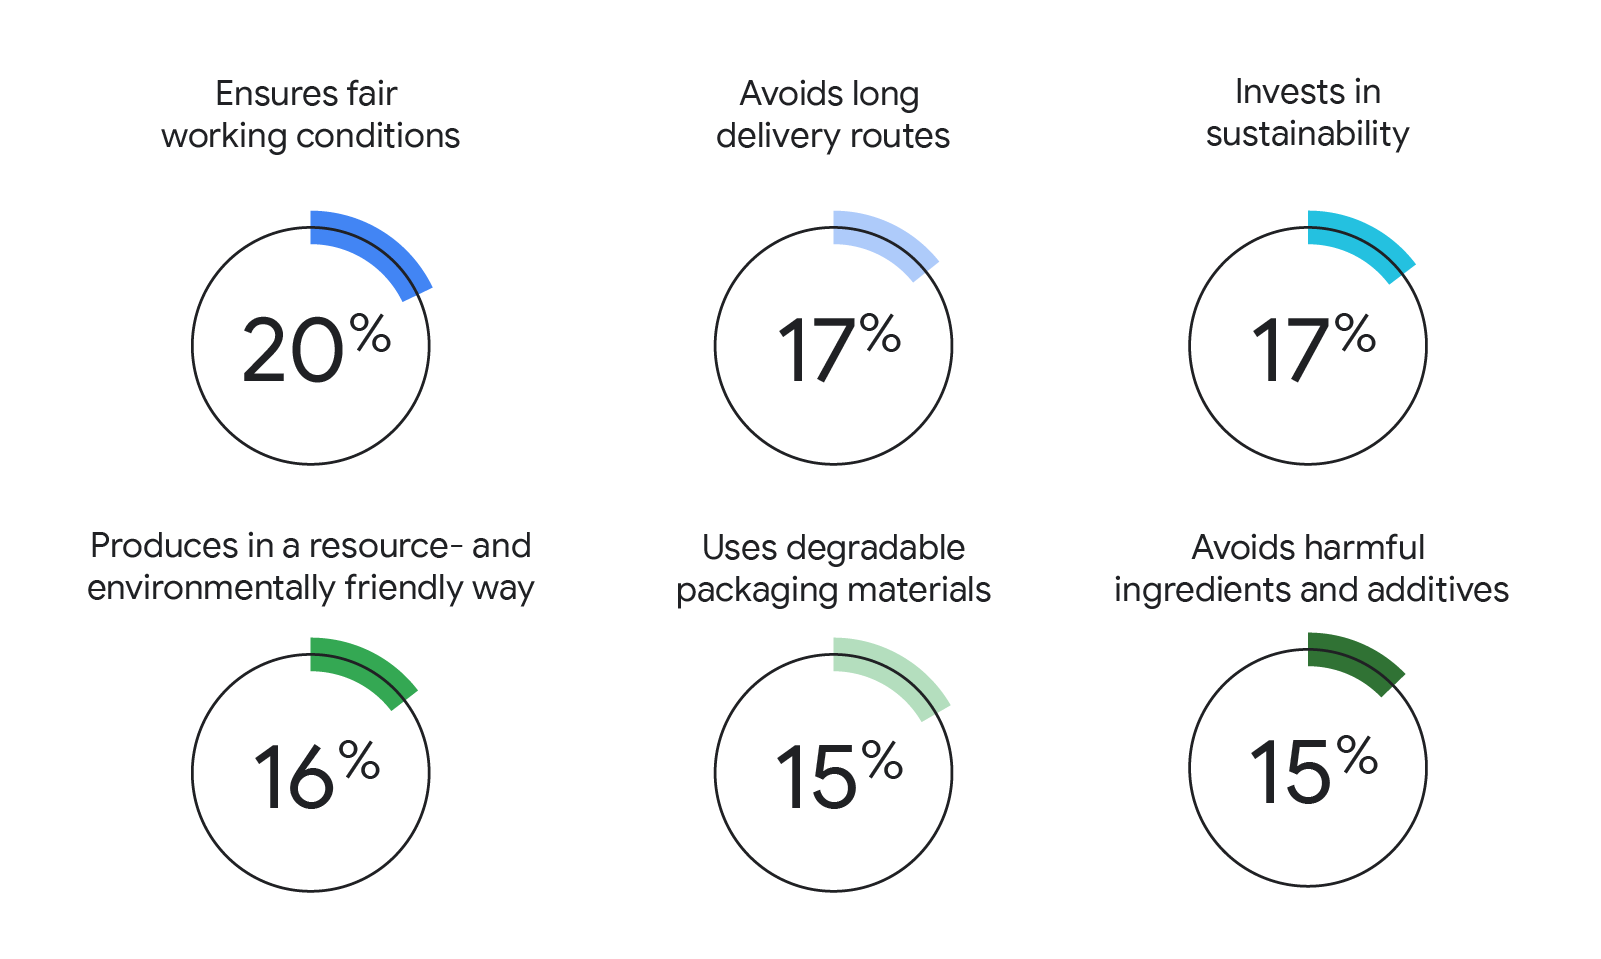 This image shows 5 charts displaying the percentage of study participants that cared about brands' investment in sustainability, fair working conditions, environmentally friendly production, and avoidance of harmful ingredients and long delivery routes.